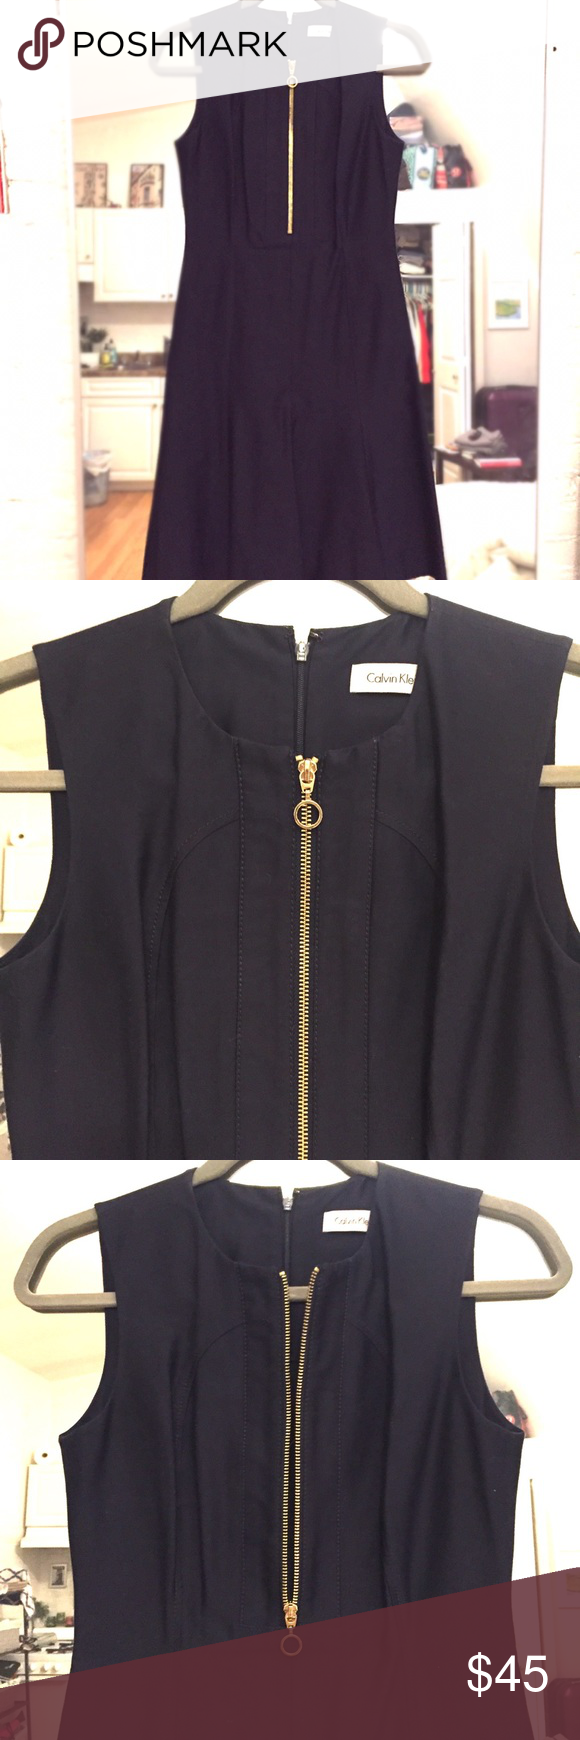 Calvin klein navy dress with gold zipper